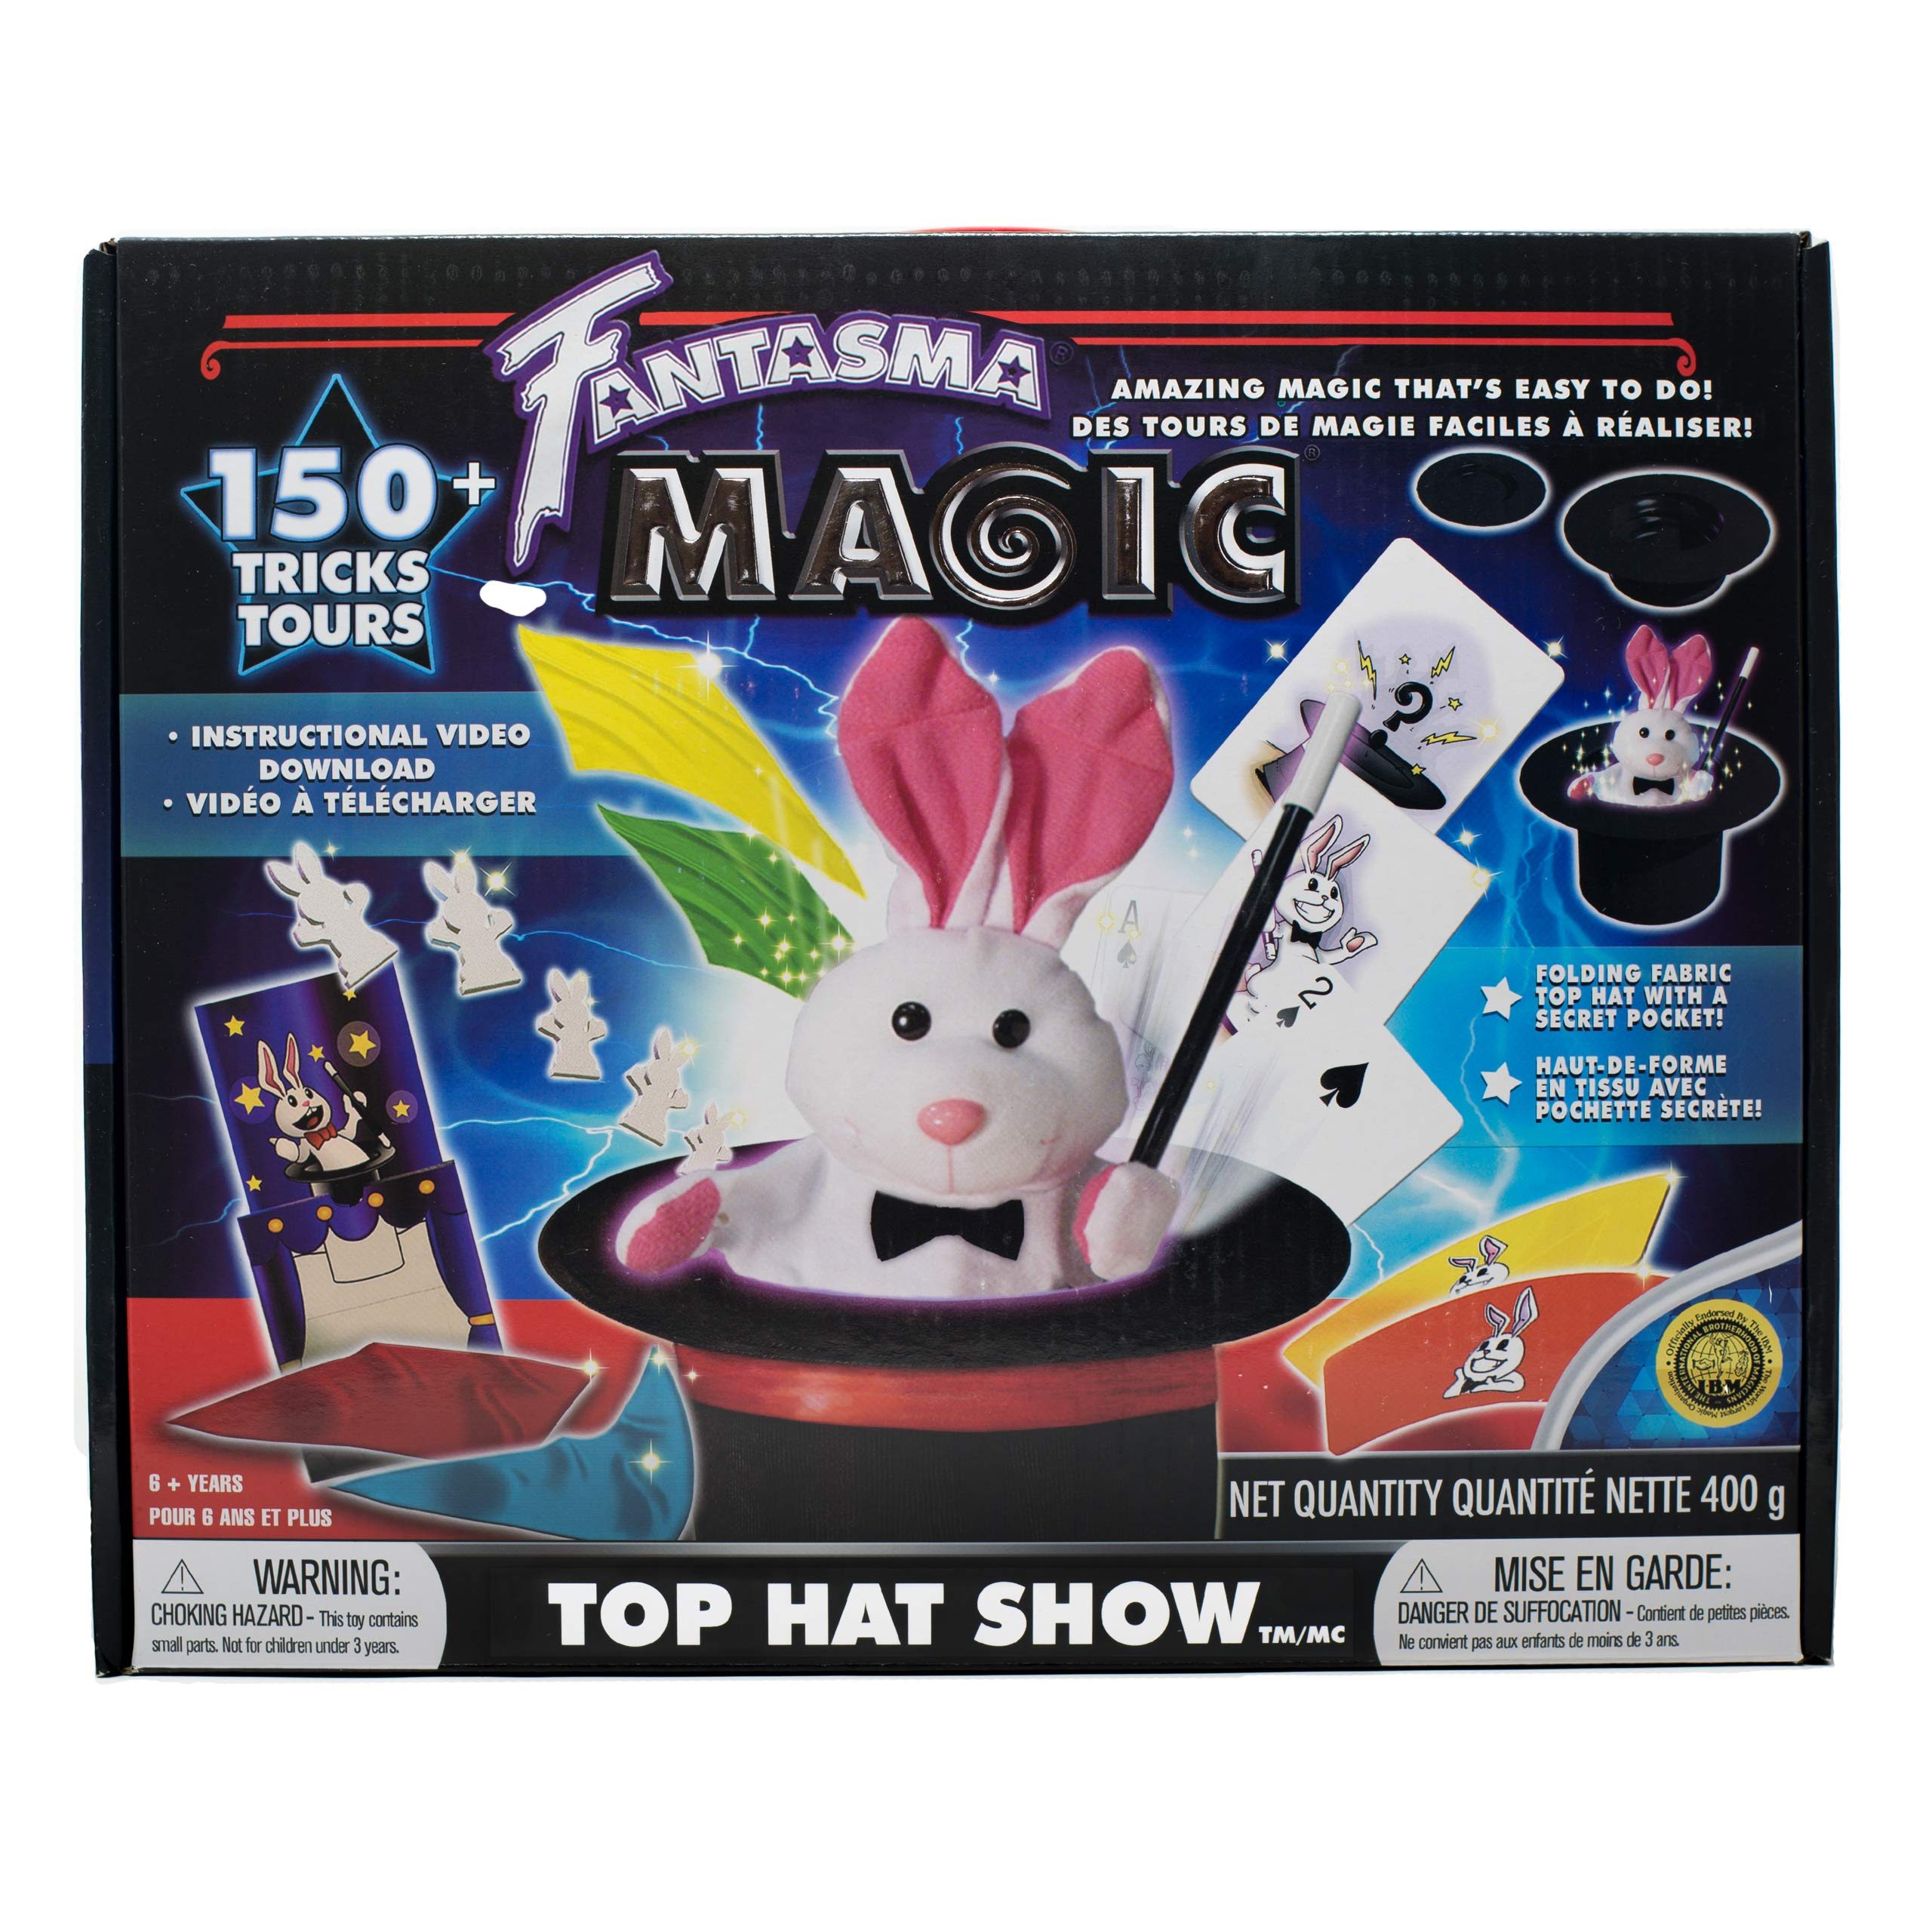 Fantasma Top Hat Show Magic Set for Kids - Magic Kit to Learn More Than 150 Magic Tricks - Great for Boys and Girls 6 Years and Older by Fantasma